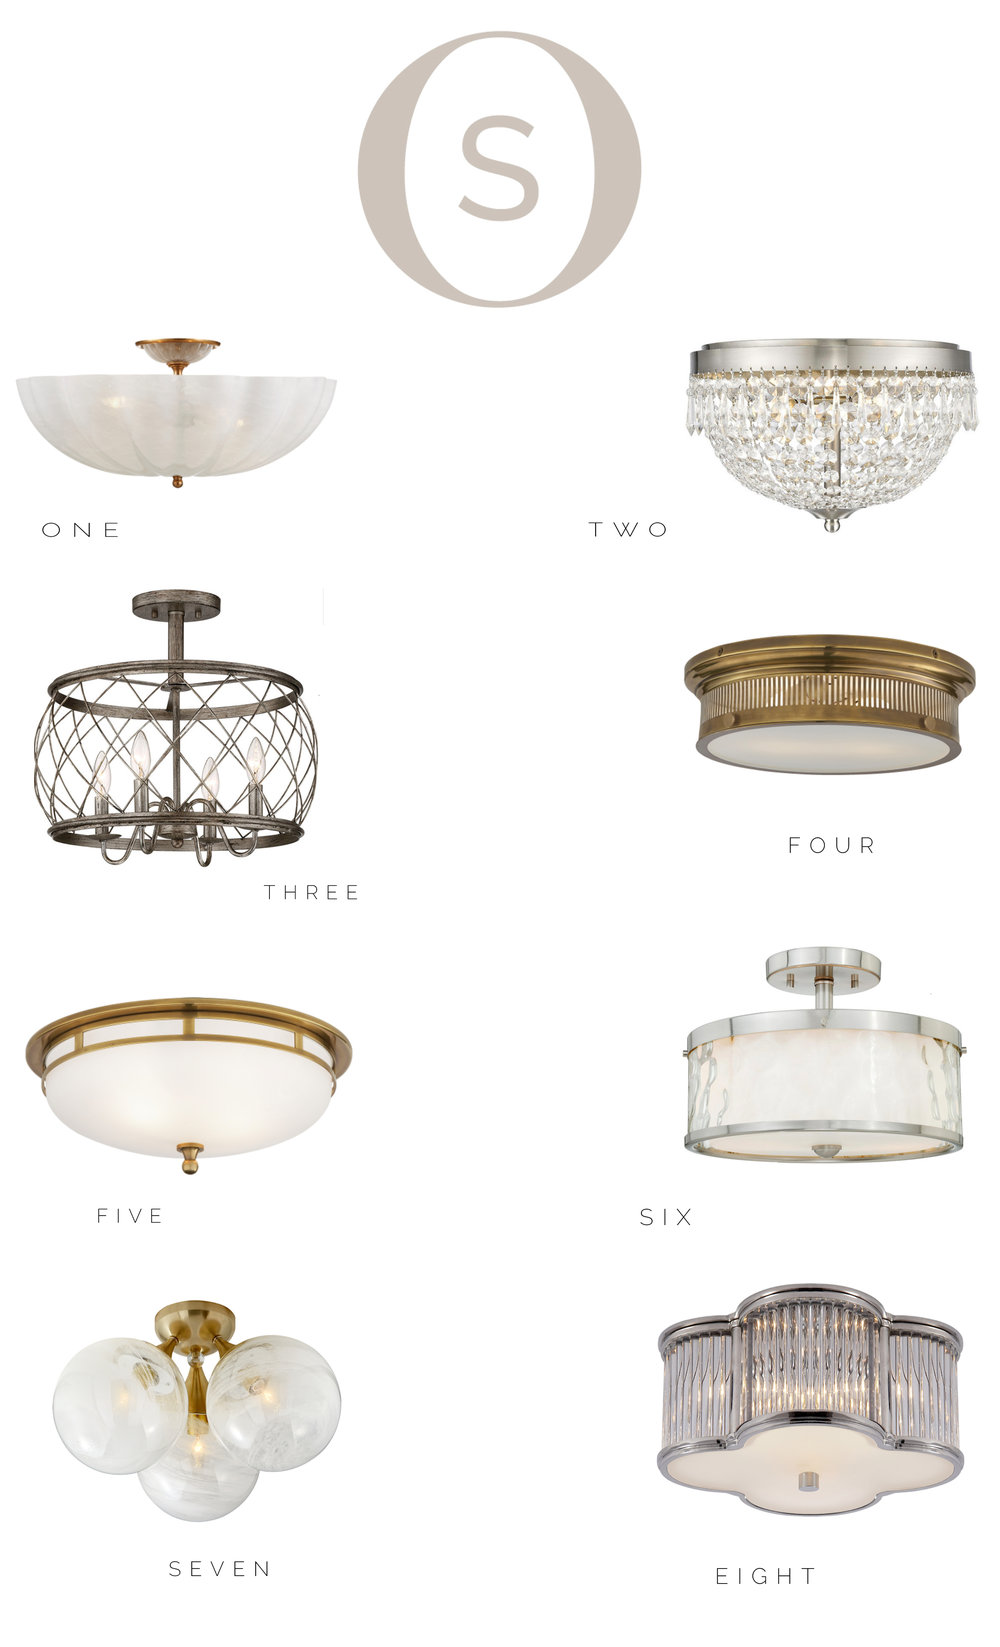 Flush and semi-flush mount lighting options.